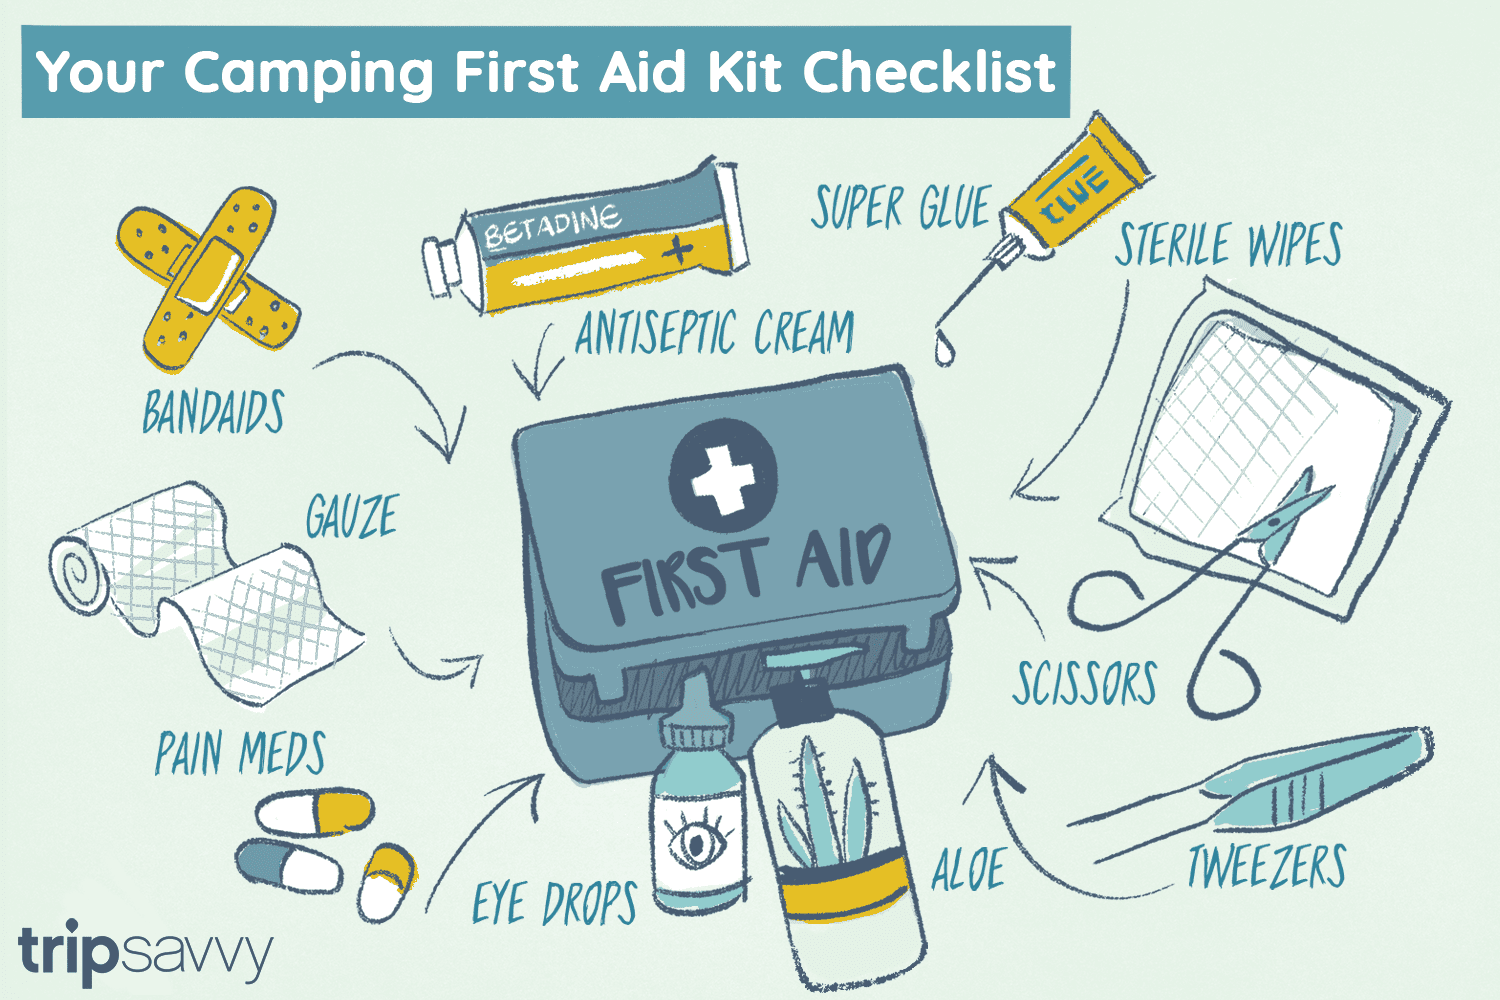 Checklist For A Camping First Aid Kit